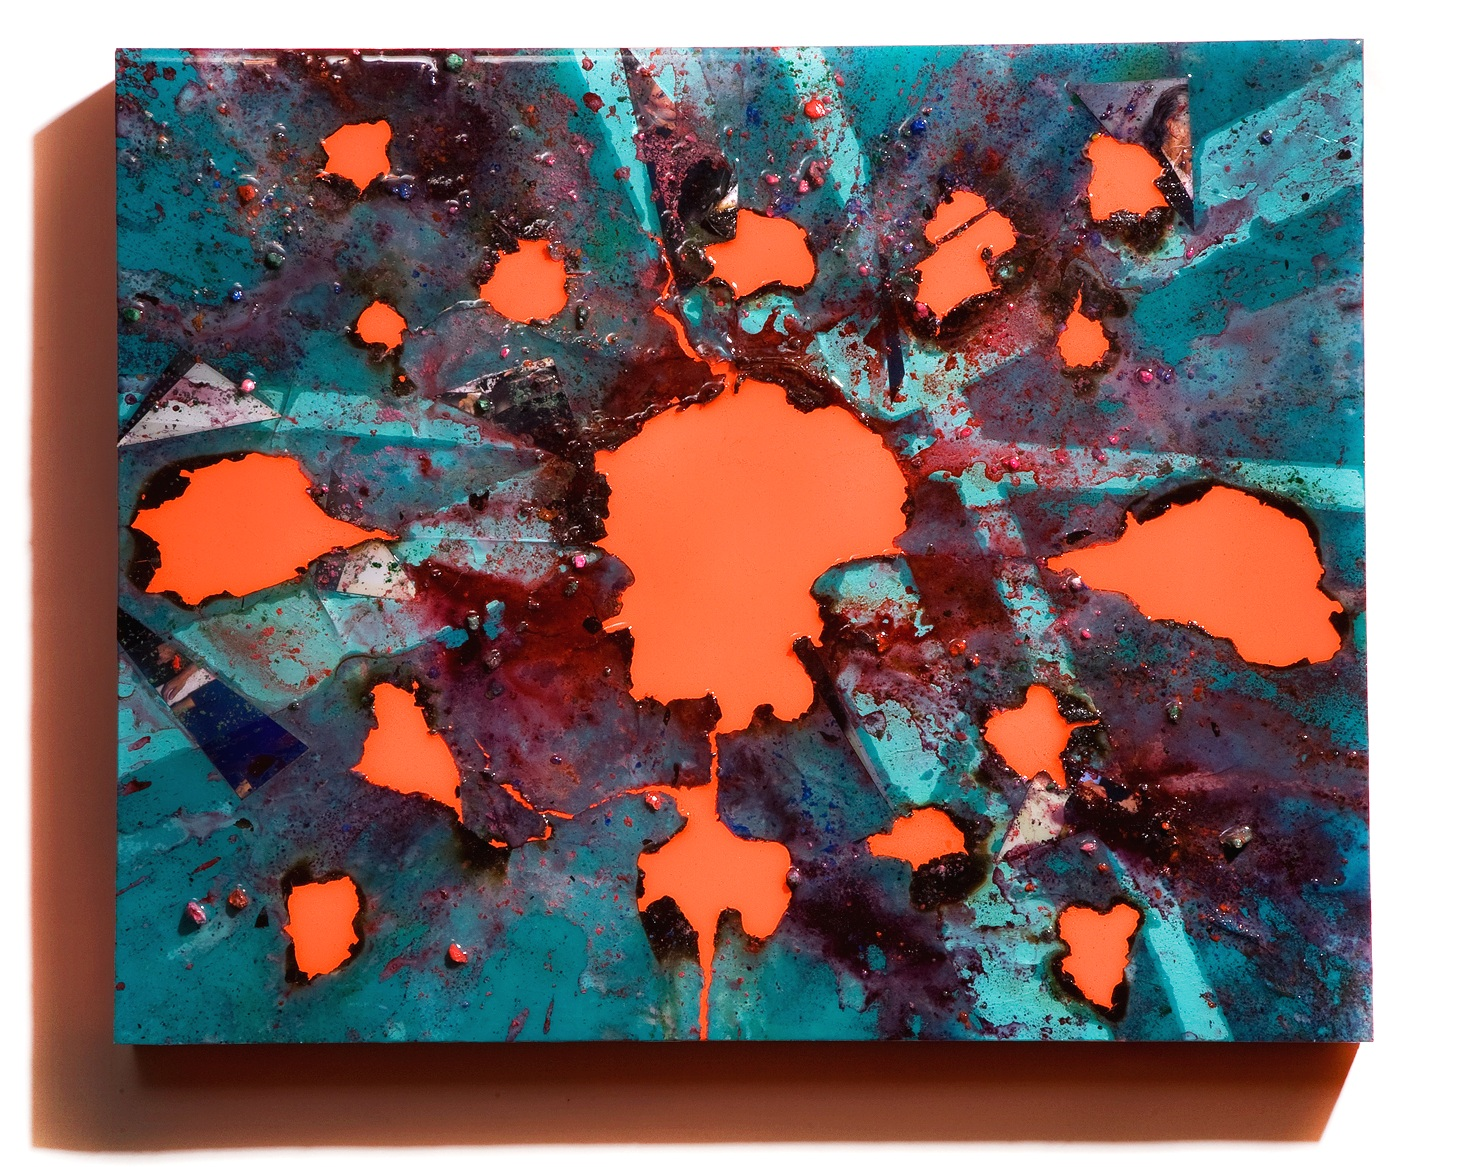 """SERIE I, Untitled (teal/day-glo orange), photographs, photo background paper, chalk, spray paint, packing tape, powder drink, glue, epoxy resin on wood panel, 16""""x20""""x2"""", 2018"""